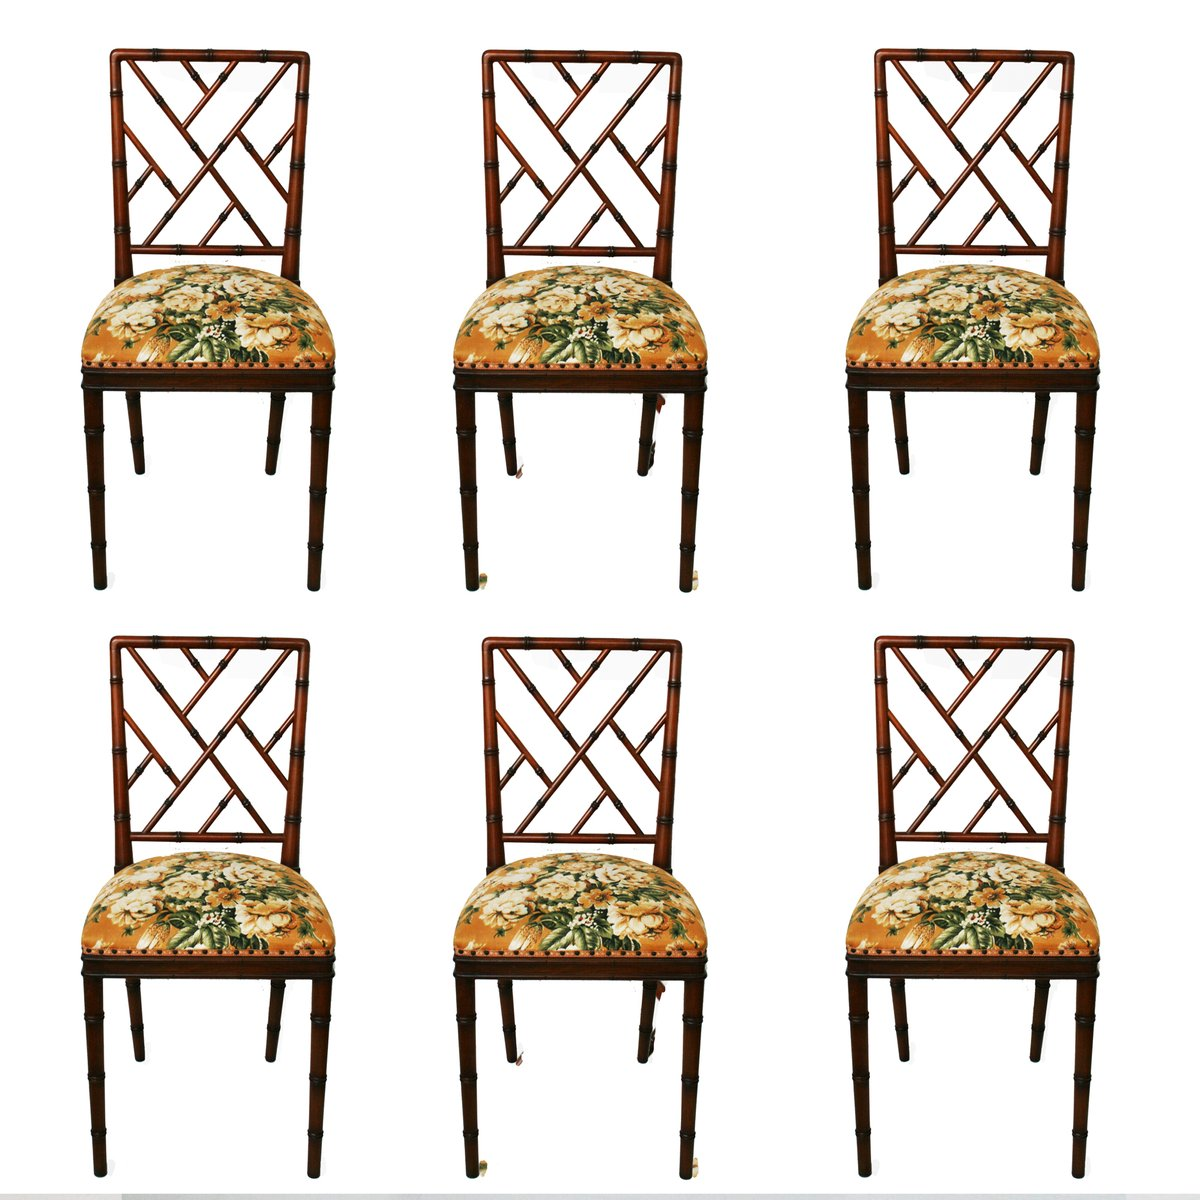 bamboo chairs graco doll high chair set hollywood regency faux of 6 for sale at pamono price 1 556 00 regular 692